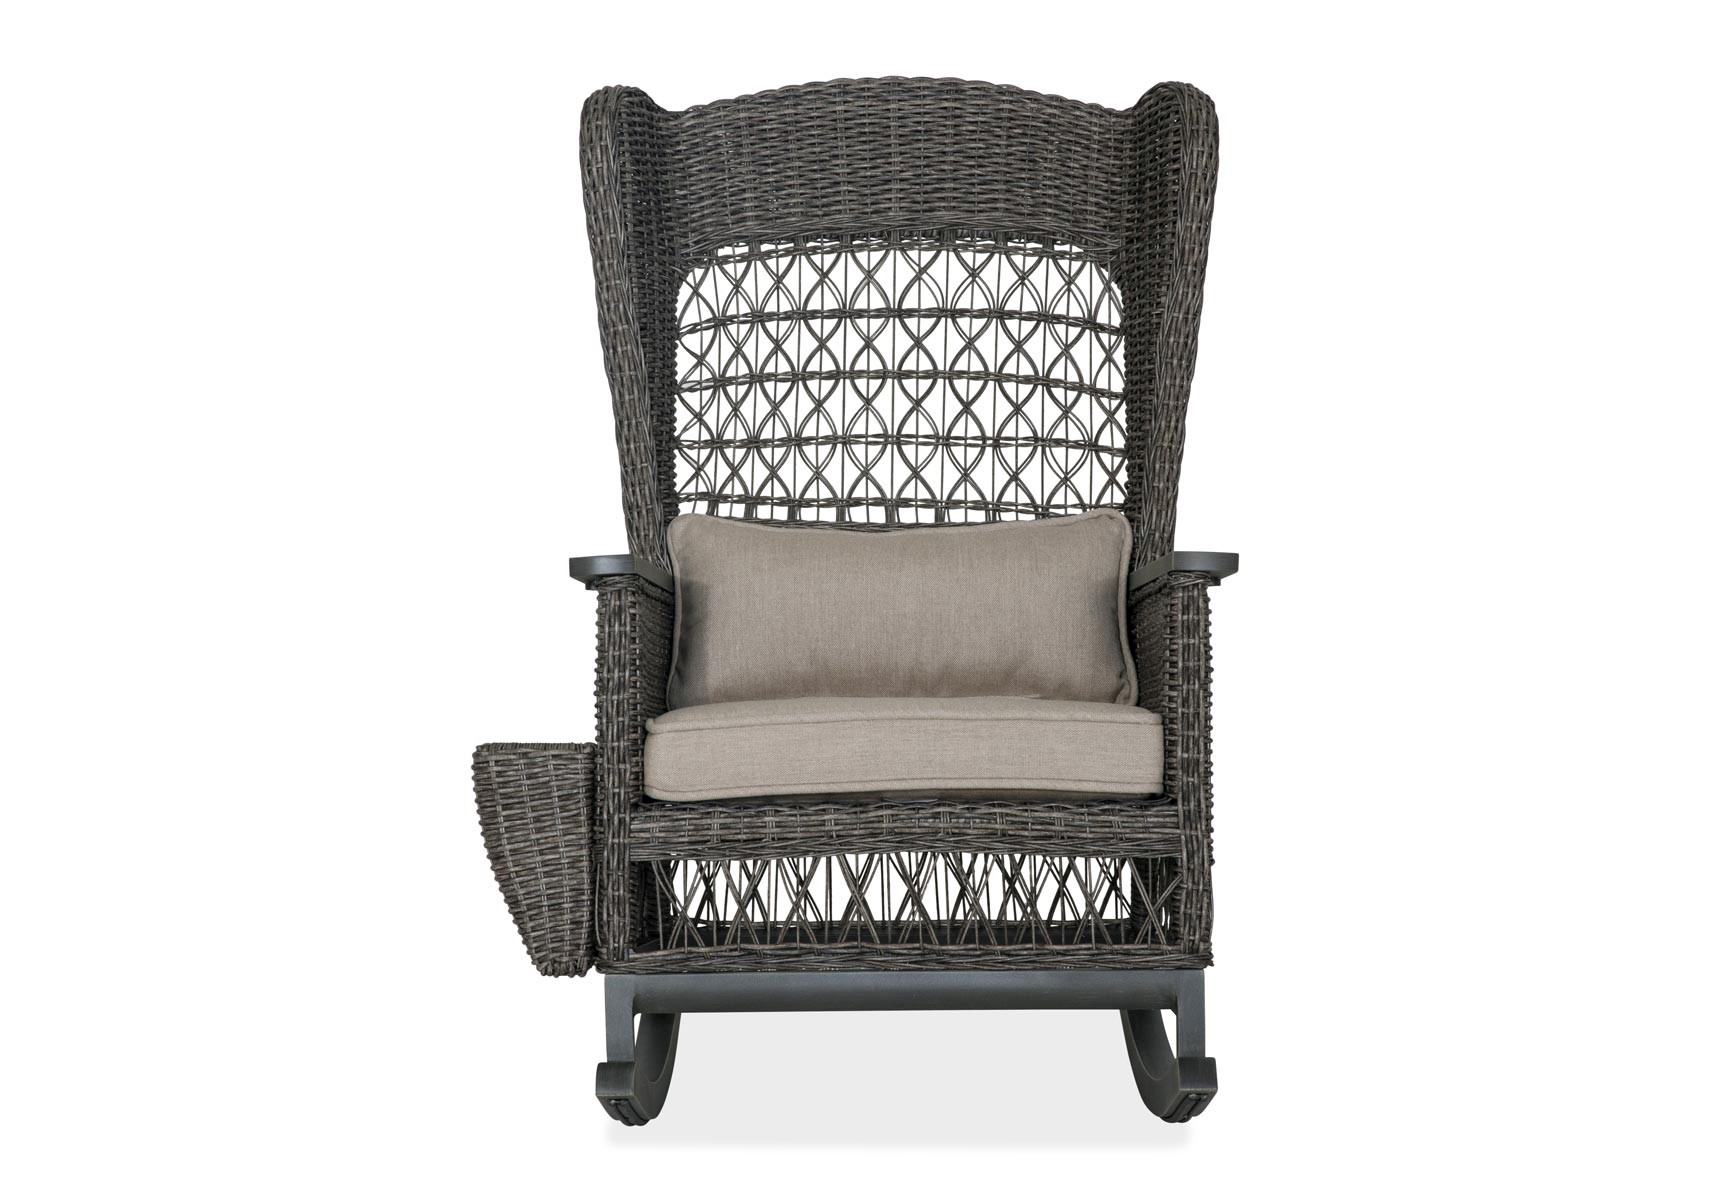 Dogwood Outdoor Rocking Chair By Paula Deen